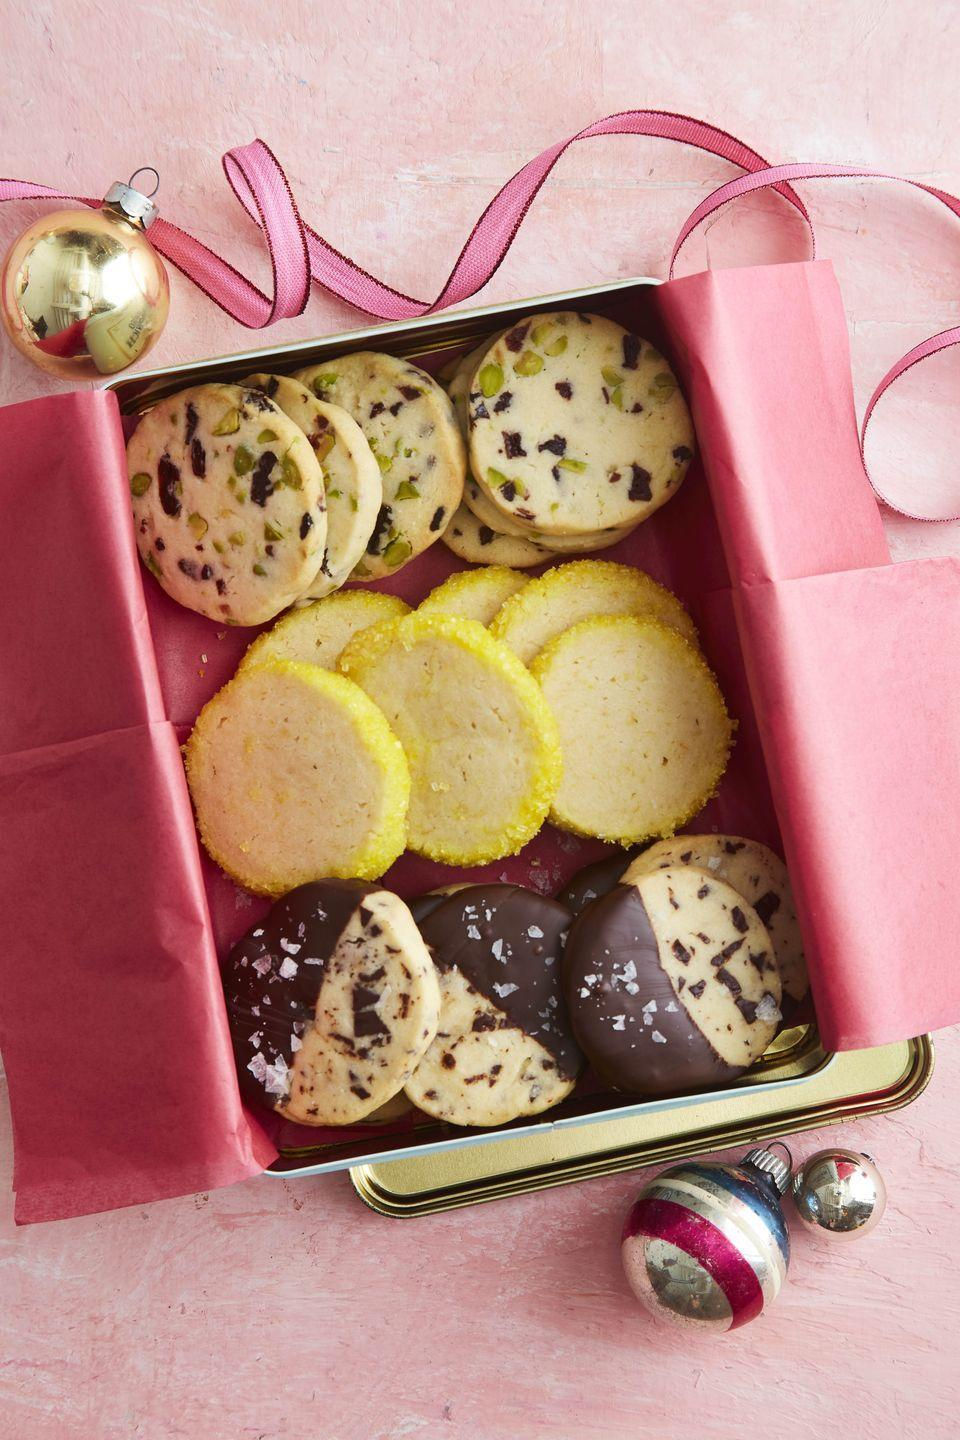 """<p>These sweet easy-to-make treats start with one dough that can then be turned into three different cookies.</p><p><strong><a href=""""https://www.countryliving.com/food-drinks/a34330858/slice-and-bake-shortbread-cookies/"""" rel=""""nofollow noopener"""" target=""""_blank"""" data-ylk=""""slk:Get the recipe"""" class=""""link rapid-noclick-resp"""">Get the recipe</a>.</strong></p><p><a class=""""link rapid-noclick-resp"""" href=""""https://www.amazon.com/Nordic-Ware-Natural-Aluminum-Commercial/dp/B0049C2S32/?tag=syn-yahoo-20&ascsubtag=%5Bartid%7C10050.g.647%5Bsrc%7Cyahoo-us"""" rel=""""nofollow noopener"""" target=""""_blank"""" data-ylk=""""slk:SHOP BAKING SHEETS"""">SHOP BAKING SHEETS</a></p>"""